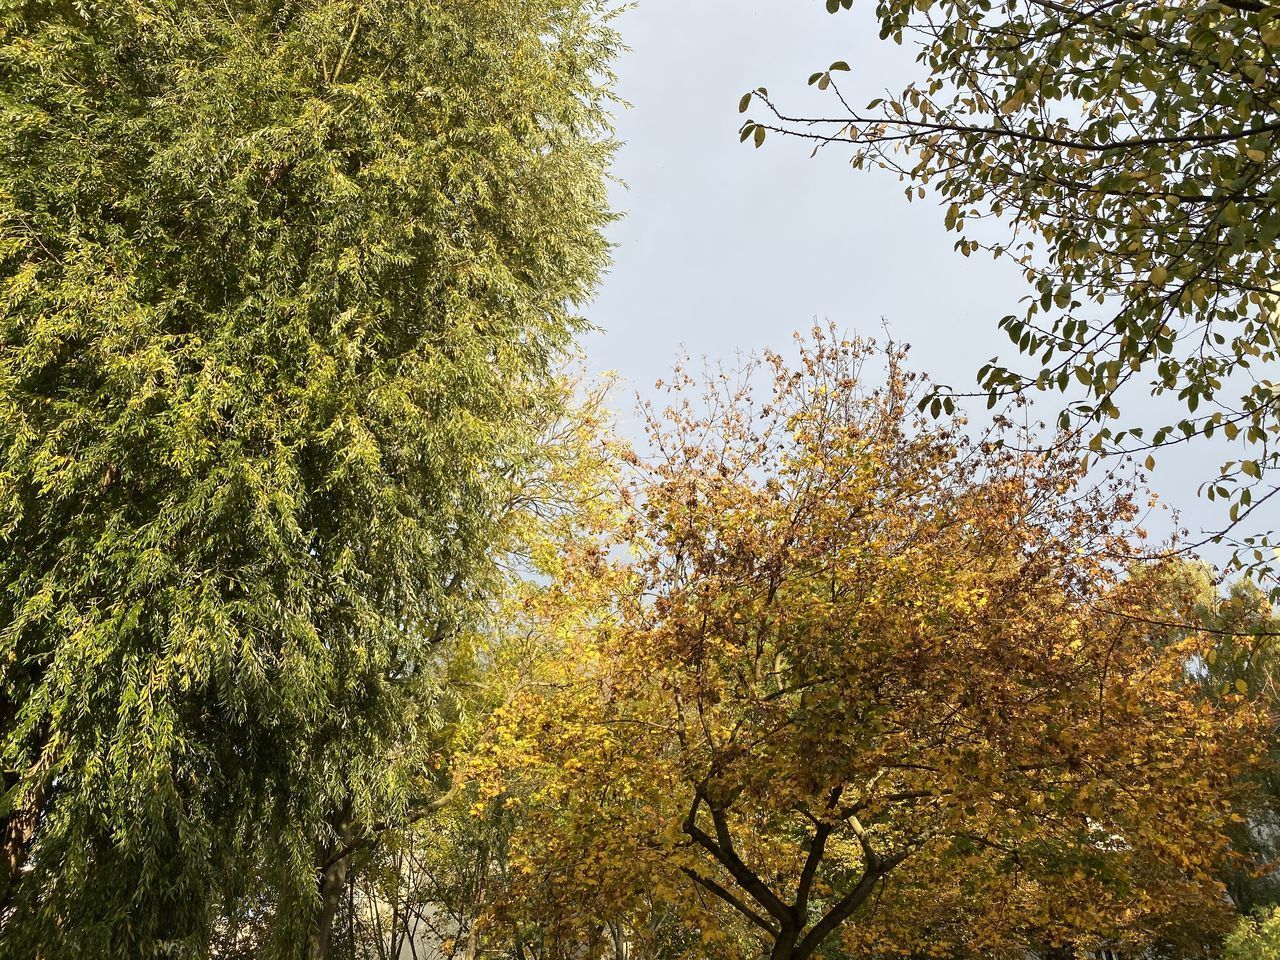 tree, plant, growth, beauty in nature, sky, tranquility, no people, nature, low angle view, day, branch, autumn, tranquil scene, outdoors, change, clear sky, green color, scenics - nature, forest, non-urban scene, tree canopy